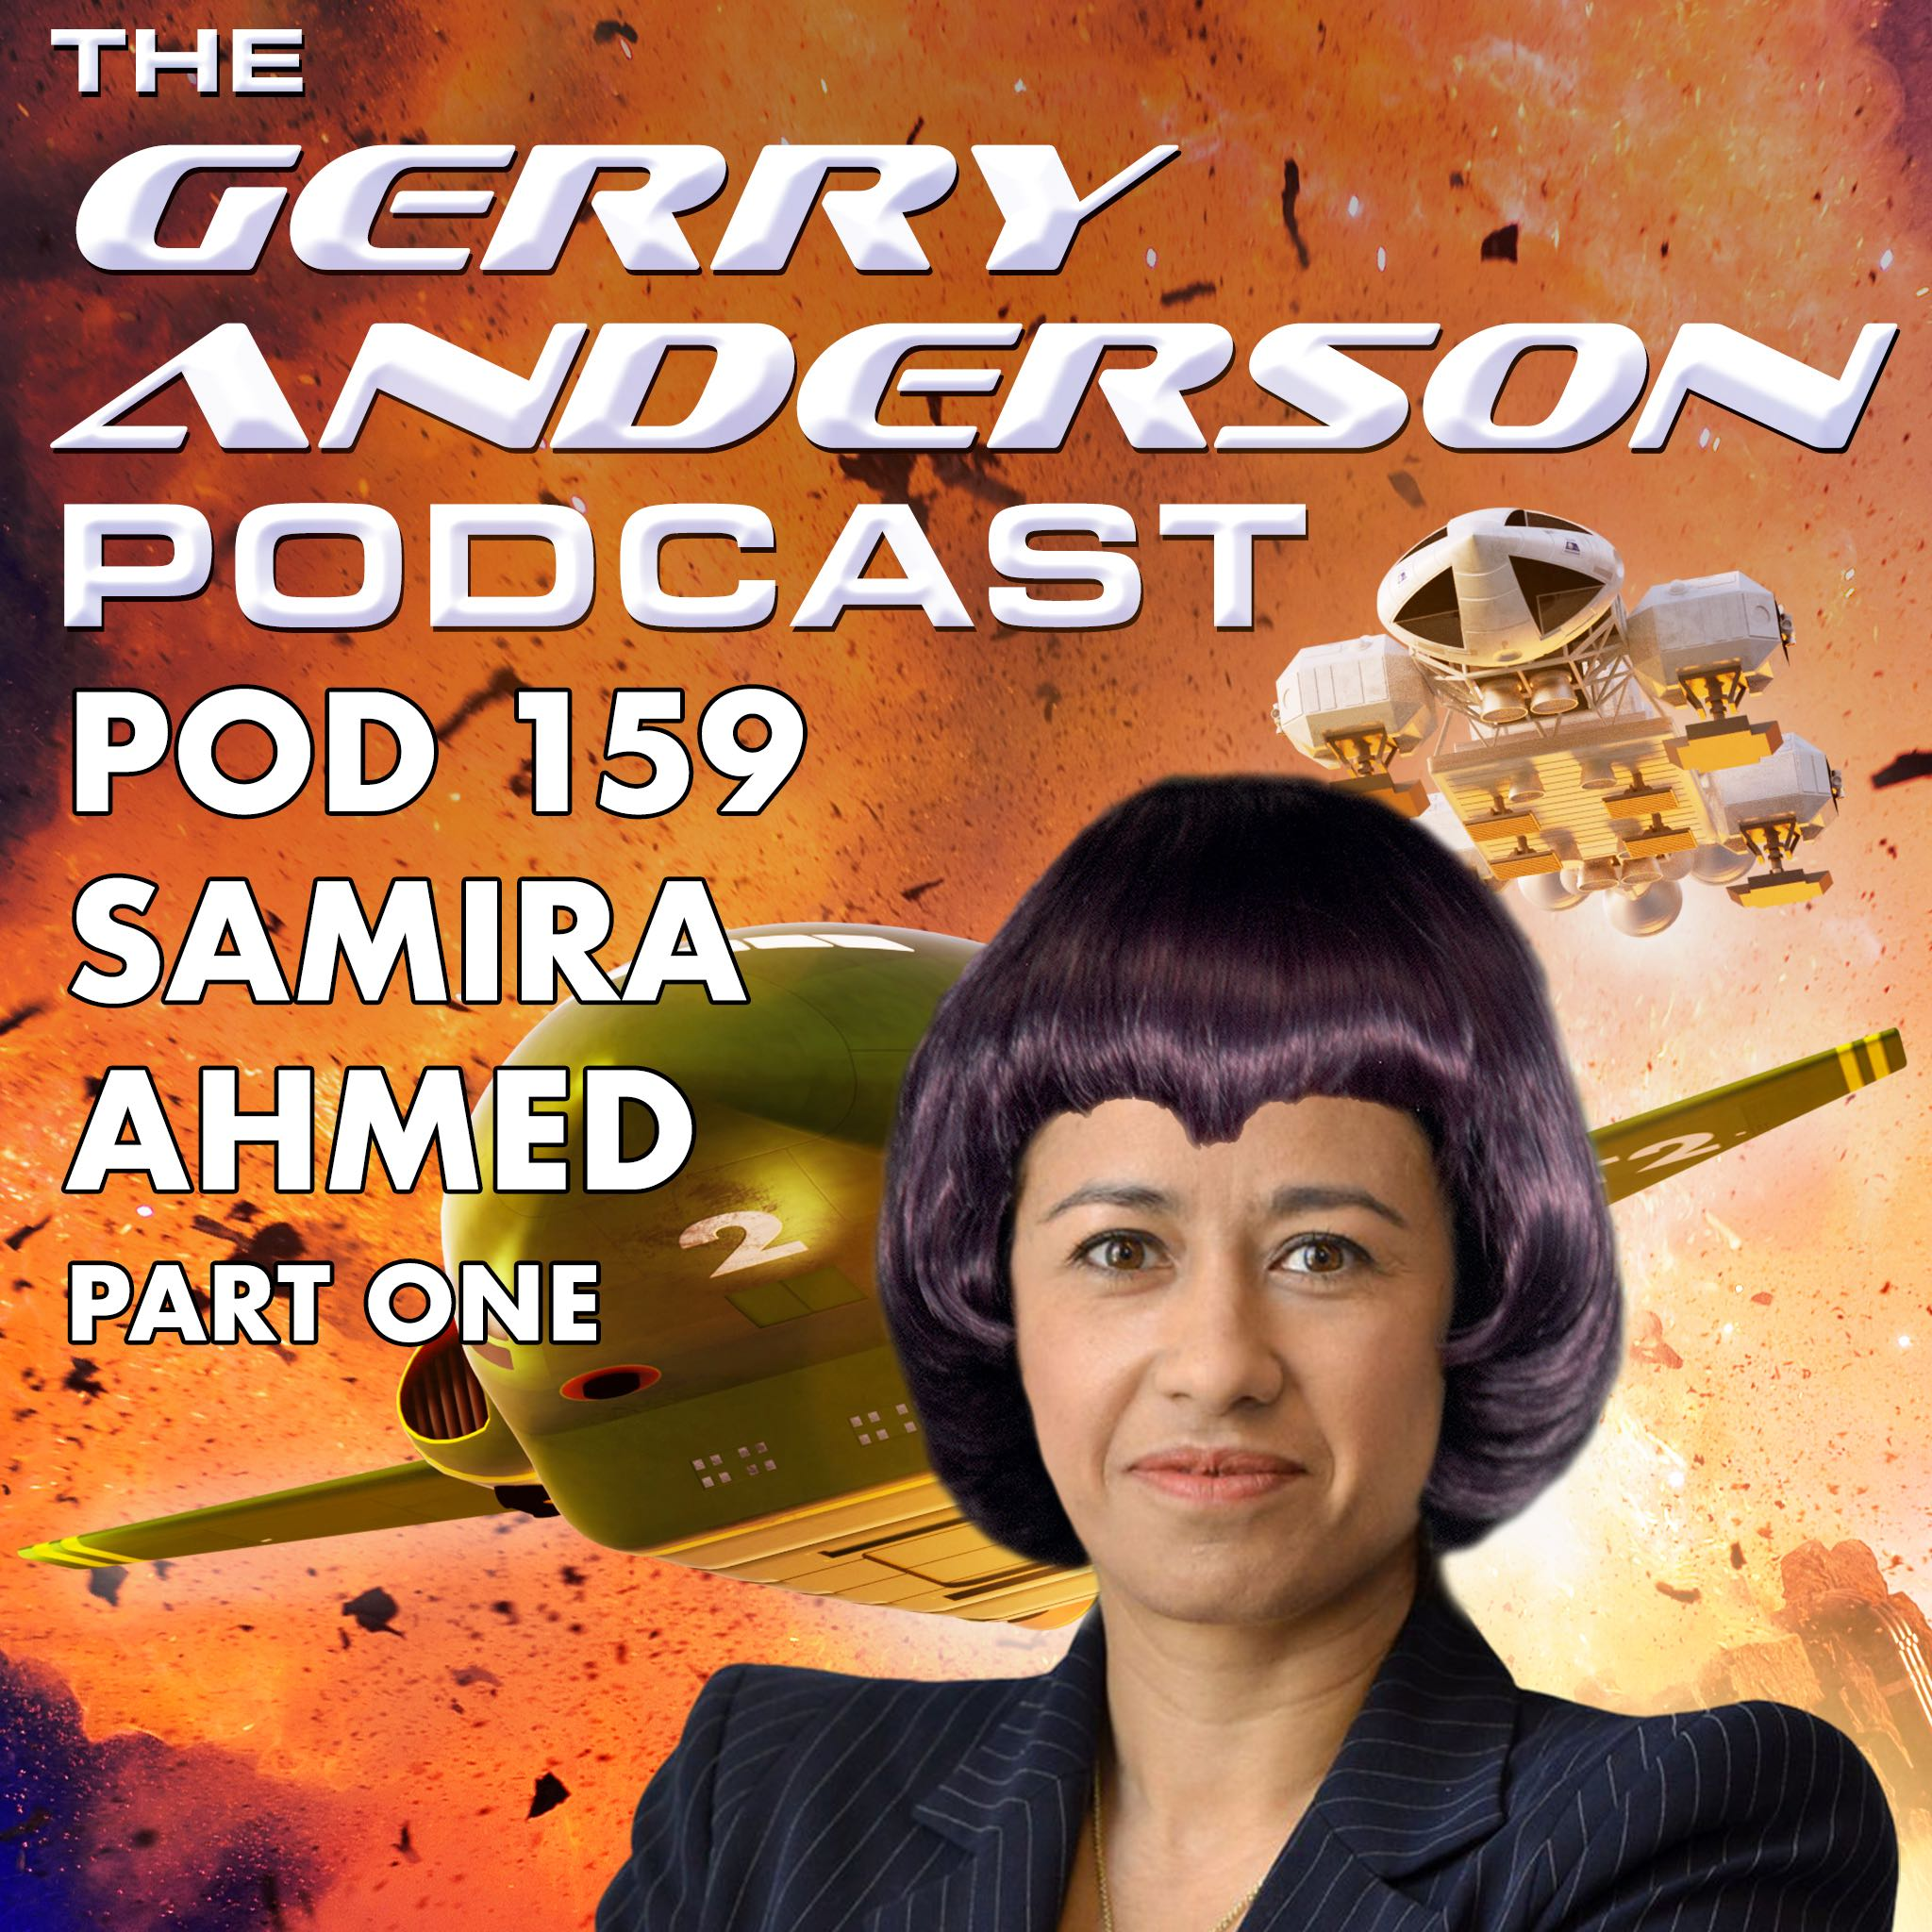 Artwork for podcast The Gerry Anderson Podcast